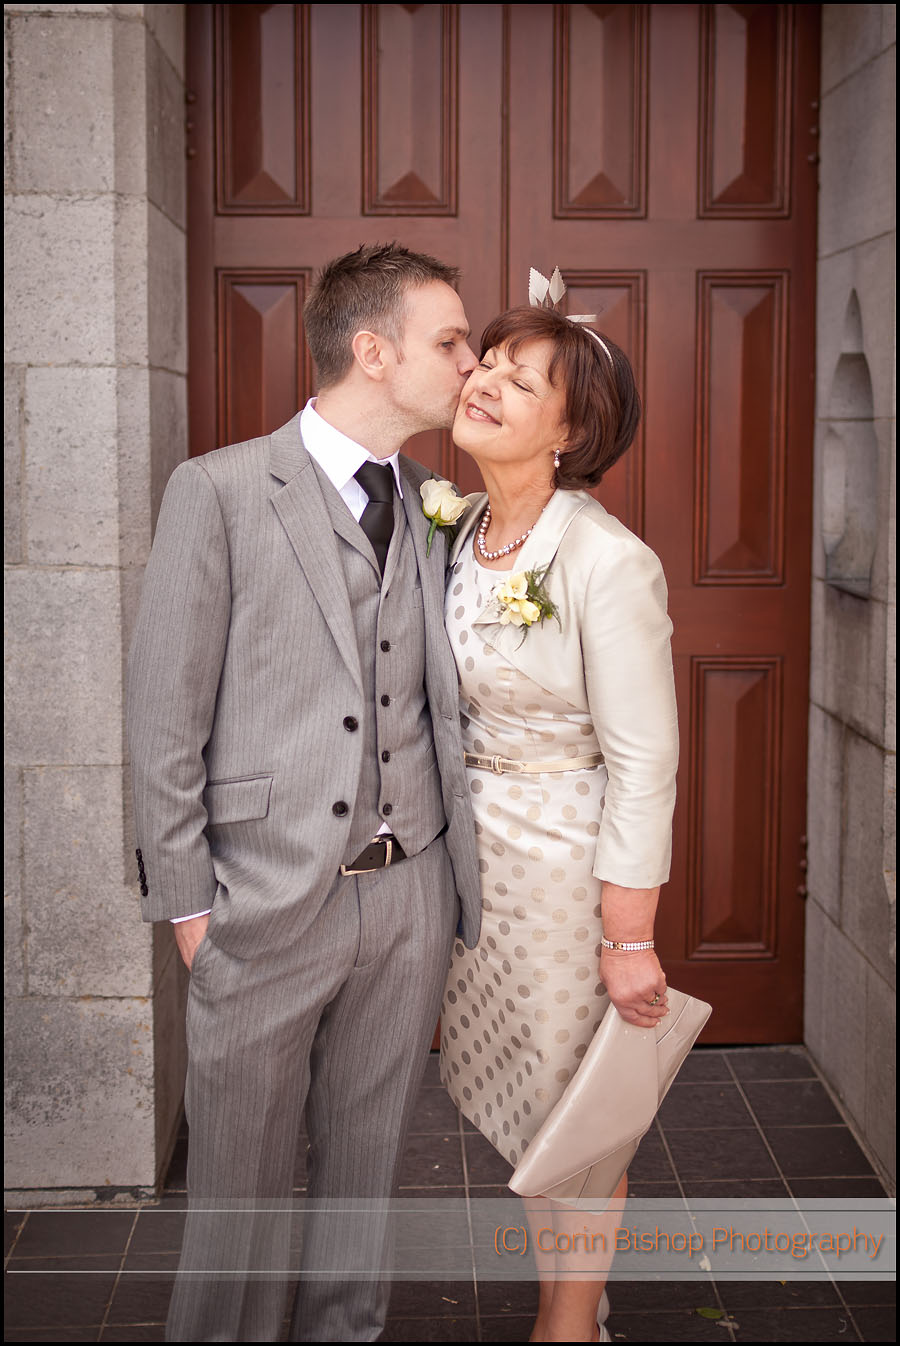 Kiss for Mum from the groom